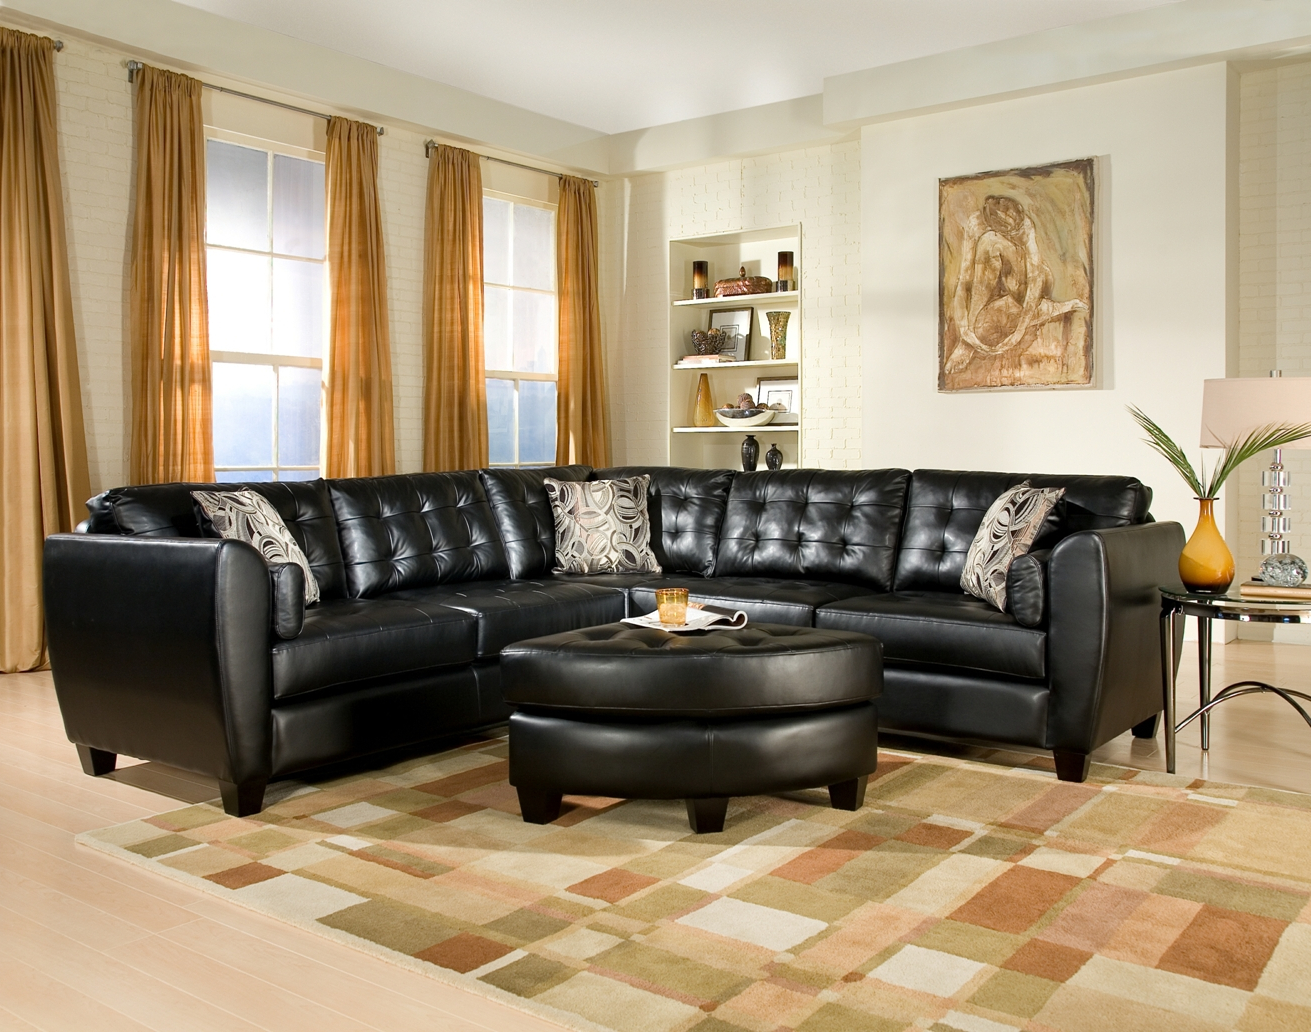 black sectional sofa room ideas amalfi living with sectionals for small